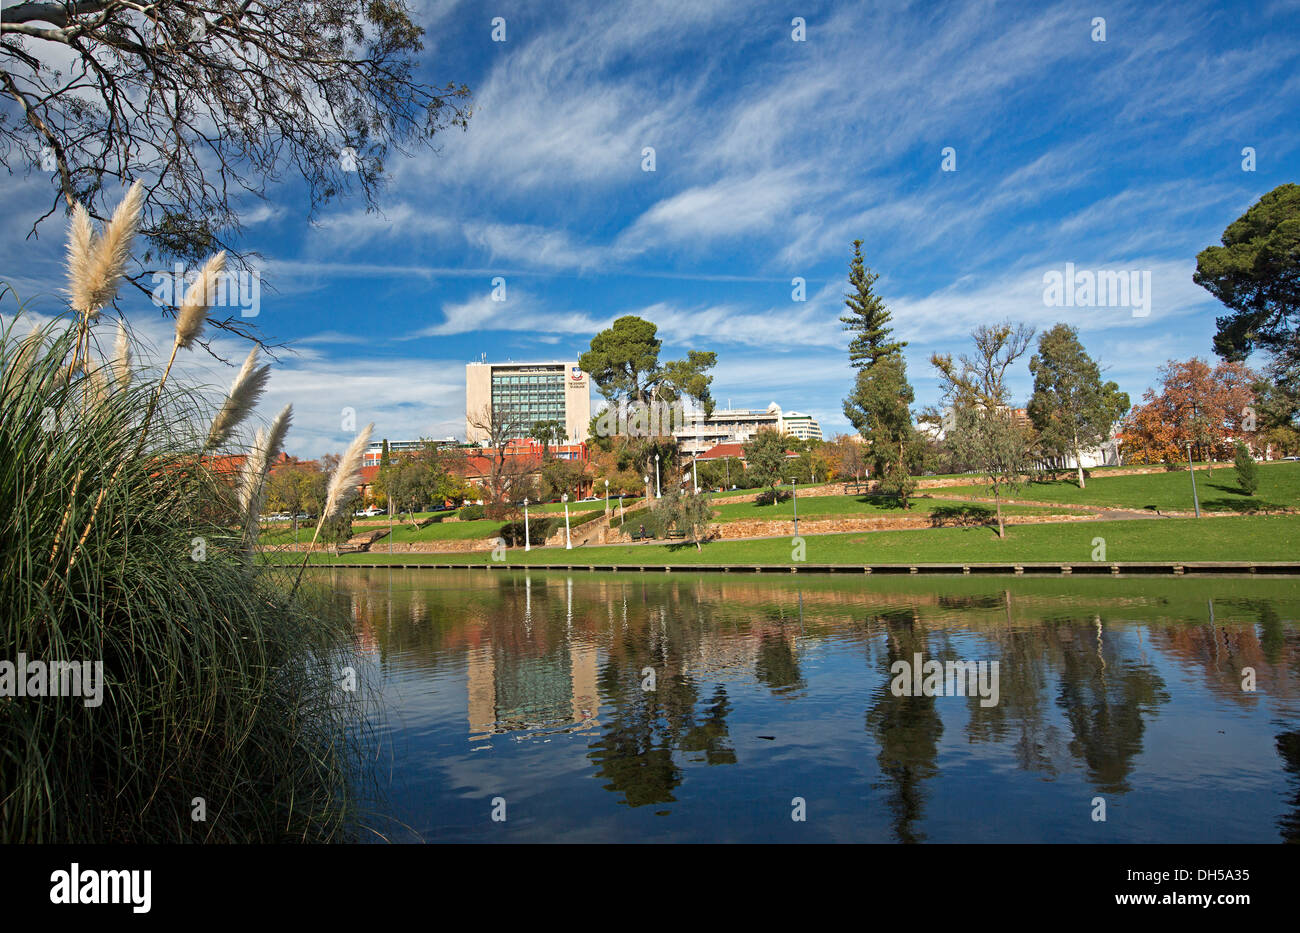 Urban landscape of parklands and Torrens River / Lake in Adelaide with city buildings and trees reflected in calm blue water - Stock Image